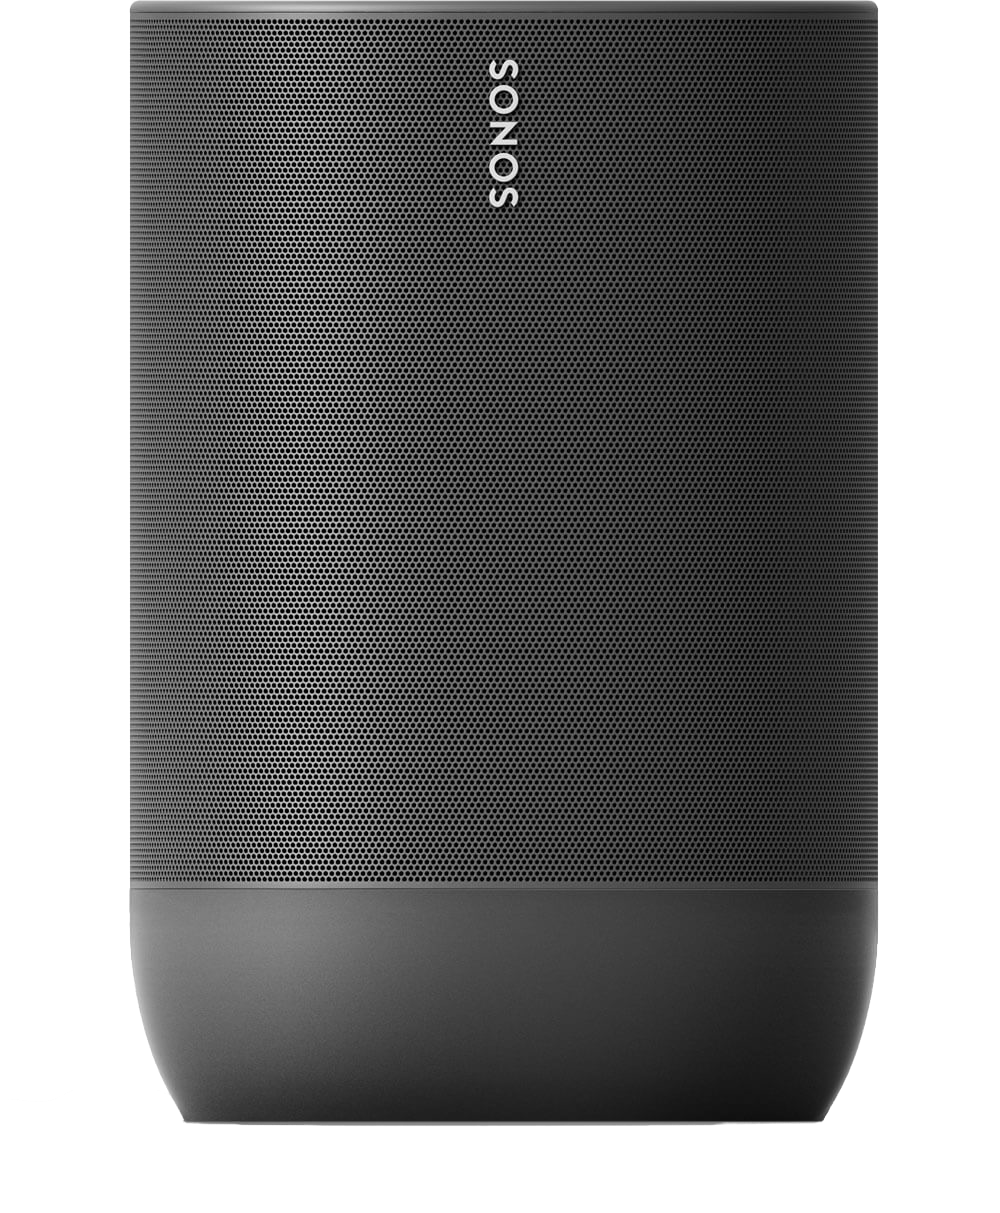 Sonos-Move-front-panel-png